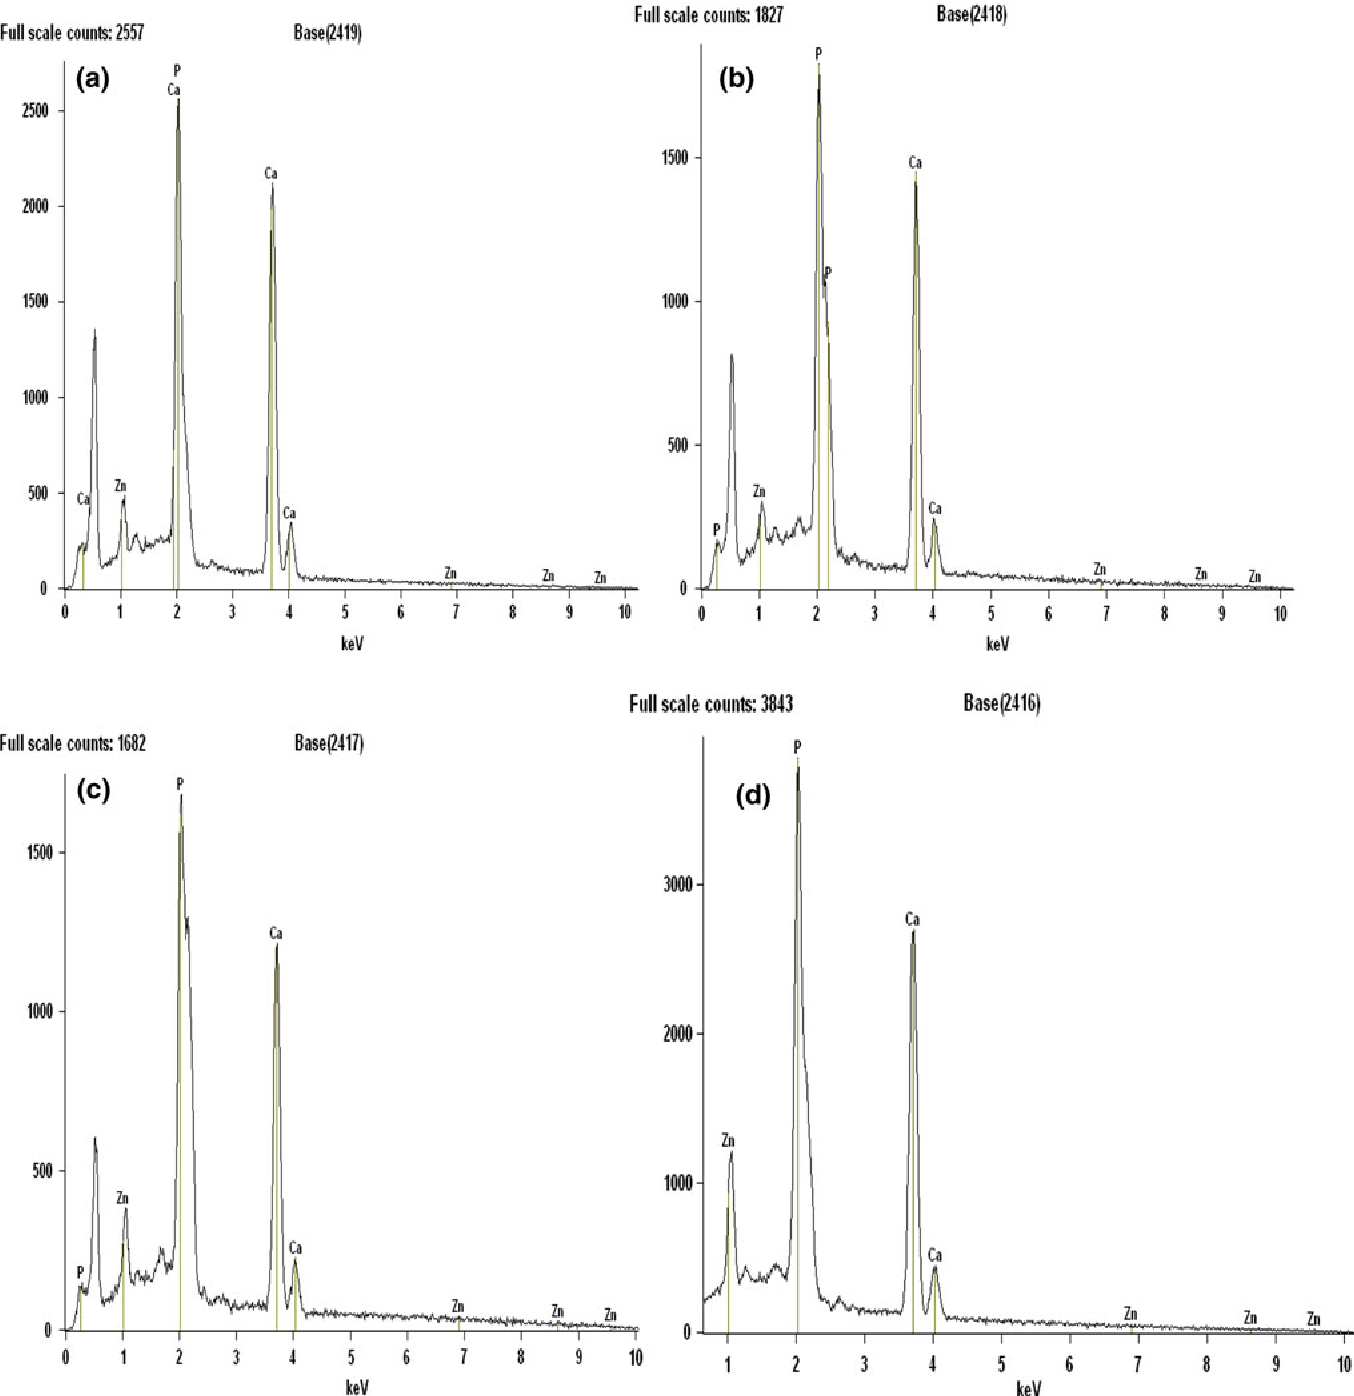 Fig. 3 EDX spectrum of zinc-doped hydroxyapatite. a 2% Zinc-doped hydroxyapatite, b 3% zinc-doped hydroxyapatite, c 4% zinc-doped hydroxyapatite, d 5% zinc-doped hydroxyapatite